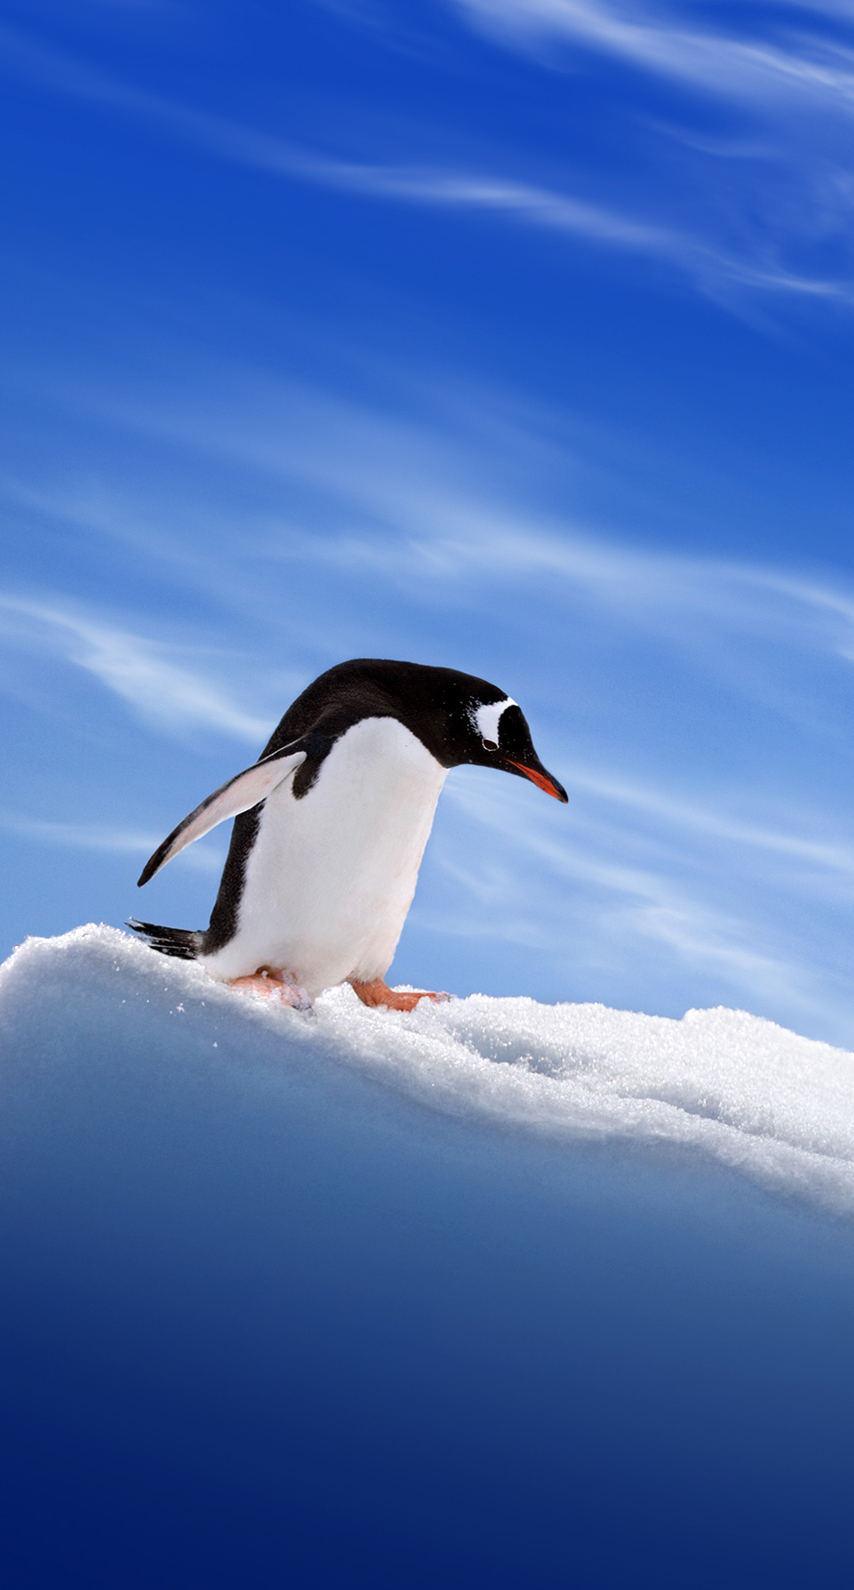 abstract, snow, frosty, ice, flight, art, animal, zombie, no person, one, outdoors, wildlife, penguins, cold